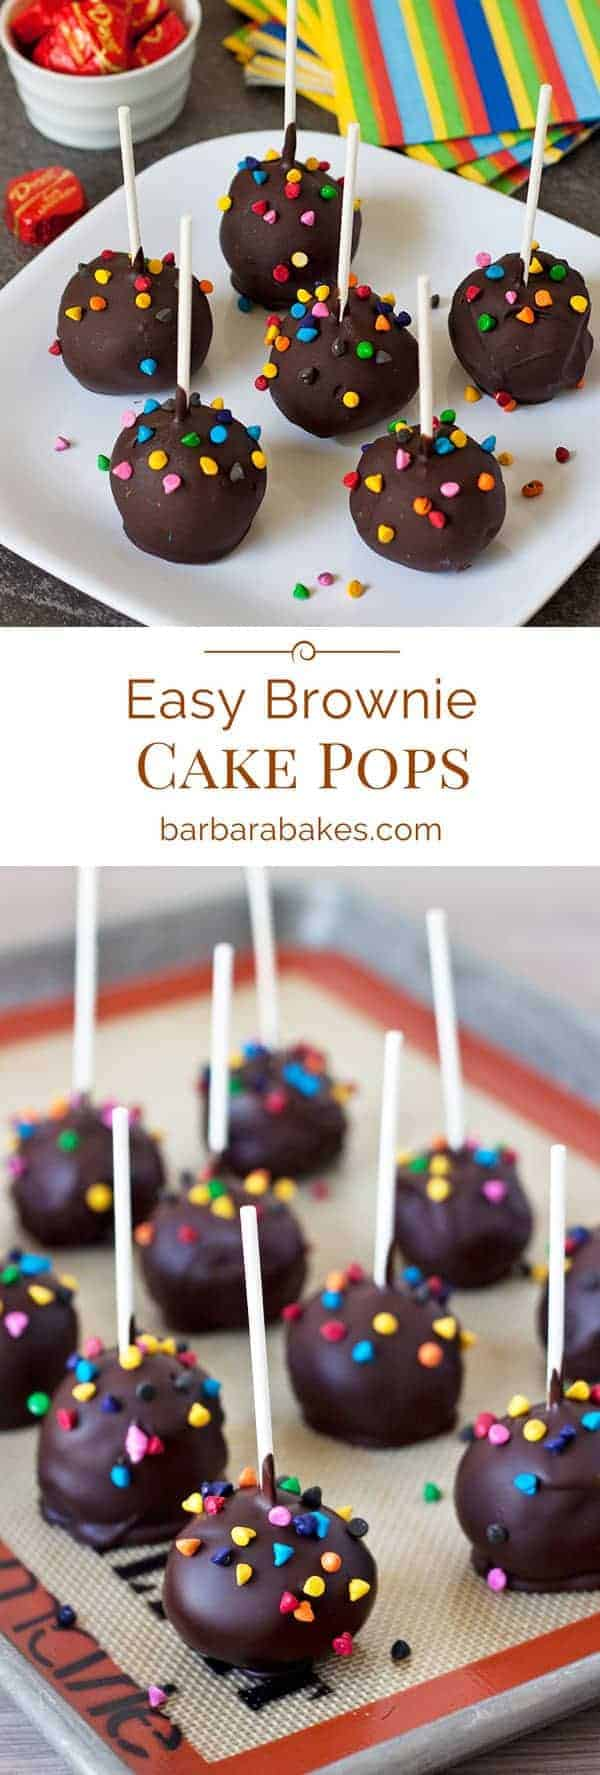 brownie cake pops easy brownie cake pops recipe from barbara bakes 2094